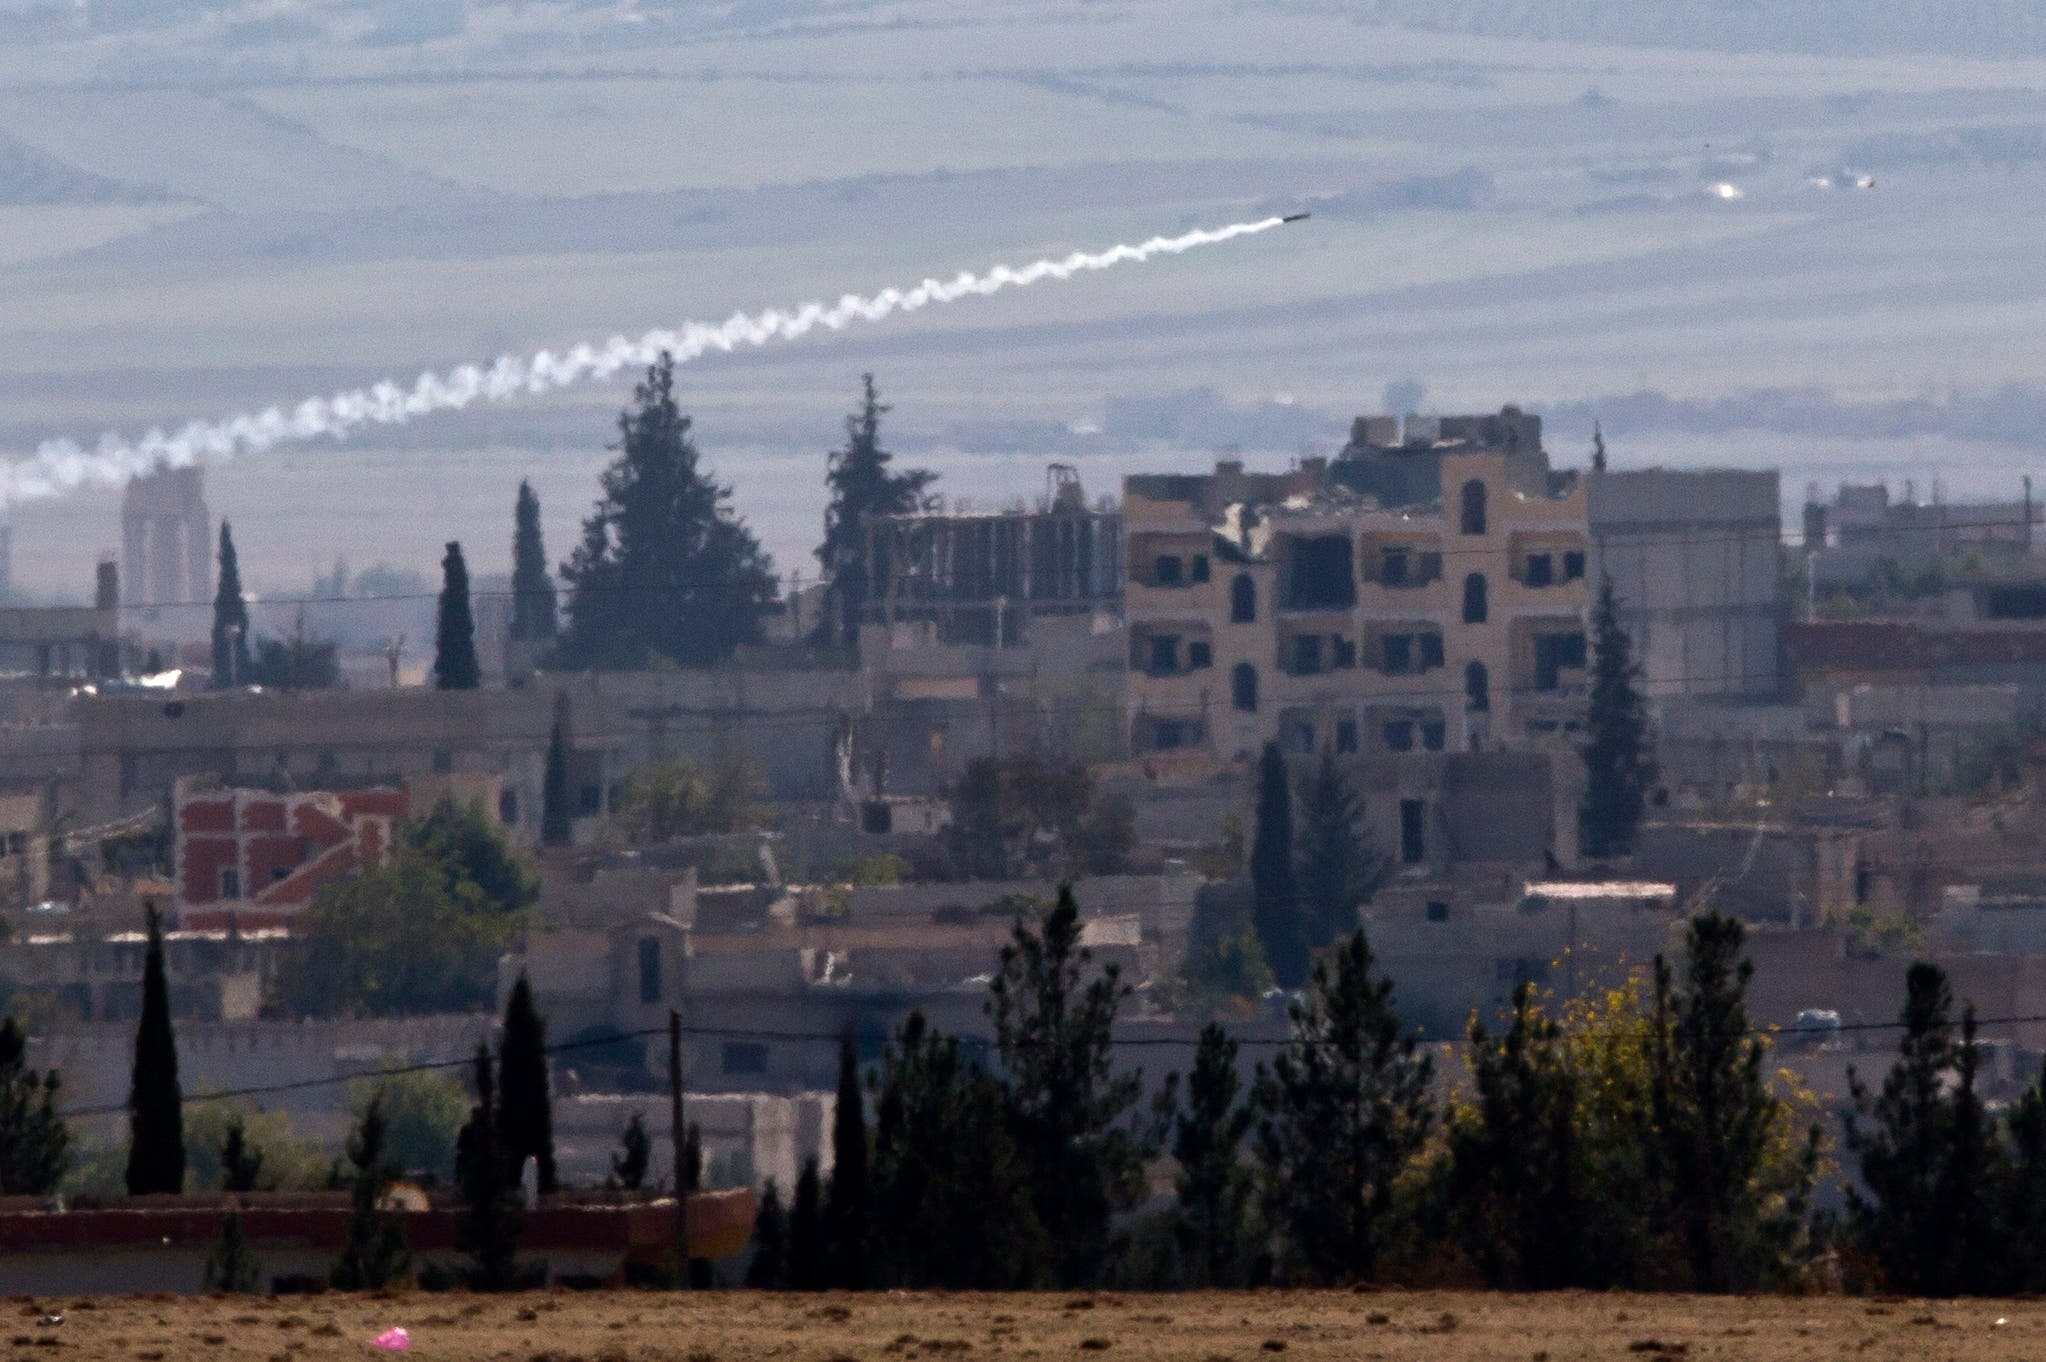 A missile is fired from Islamic State positions in Kobani, seen from a hilltop outside Suruc, on the Turkey-Syria border Thursday, Nov. 6, 2014. Kobani, also known as Ayn Arab, and its surrounding areas, has been under assault by extremists of the Islamic State group since mid-September and is being defended by Kurdish fighters. (AP